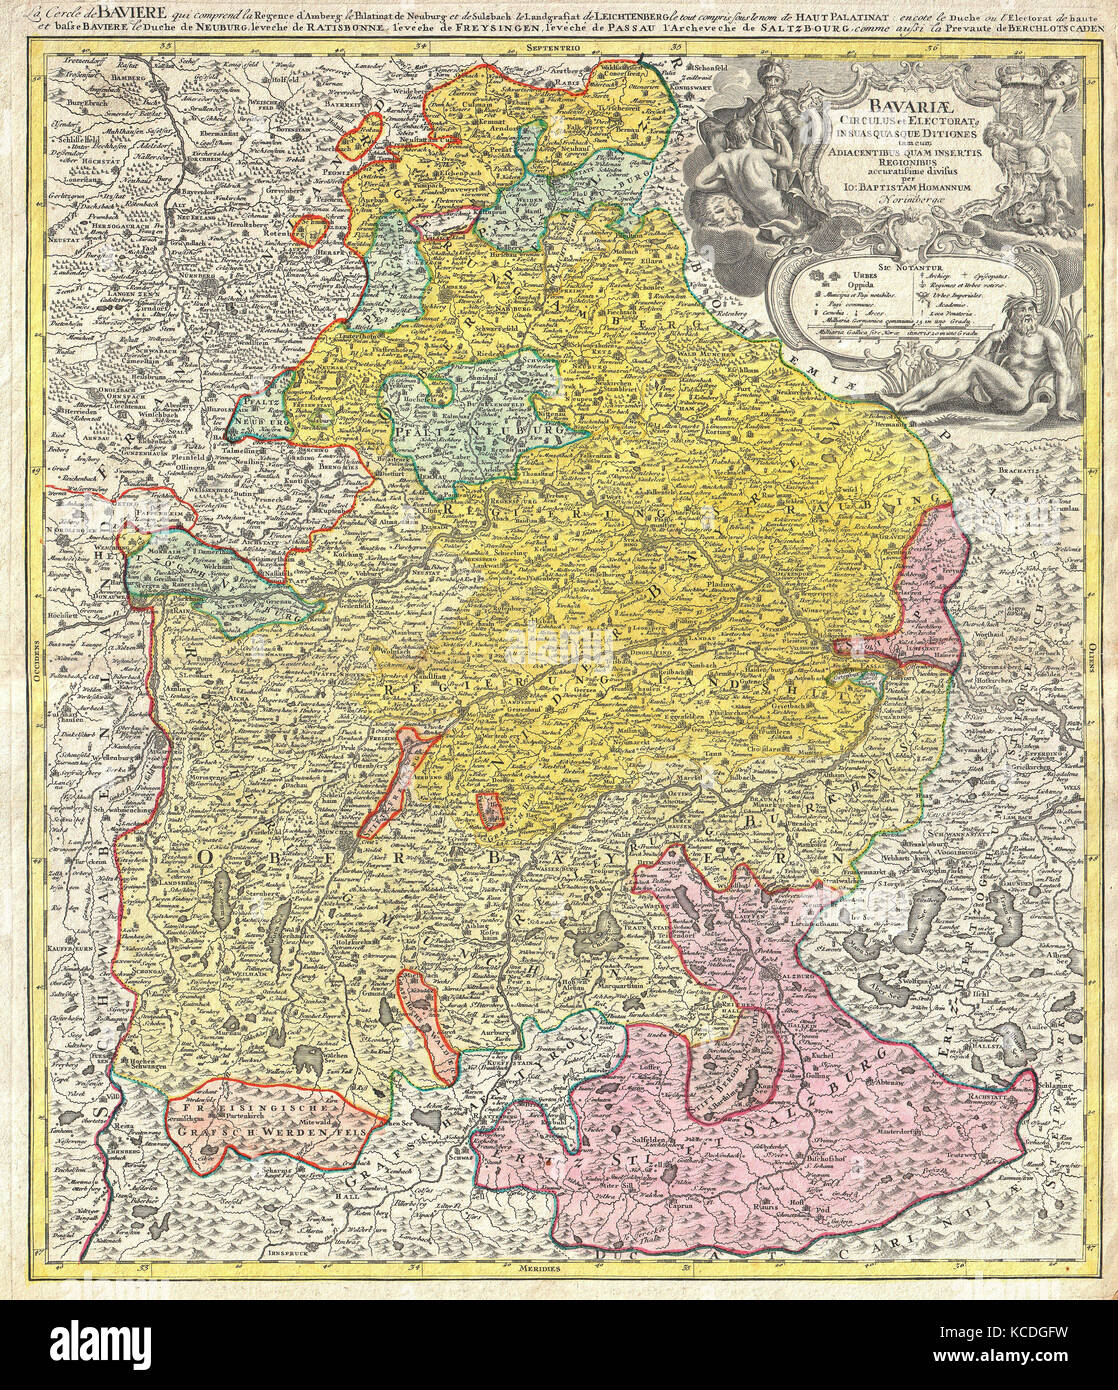 Old map bavaria germany stock photos old map bavaria germany 1728 homann map of bavaria germany stock image sciox Image collections